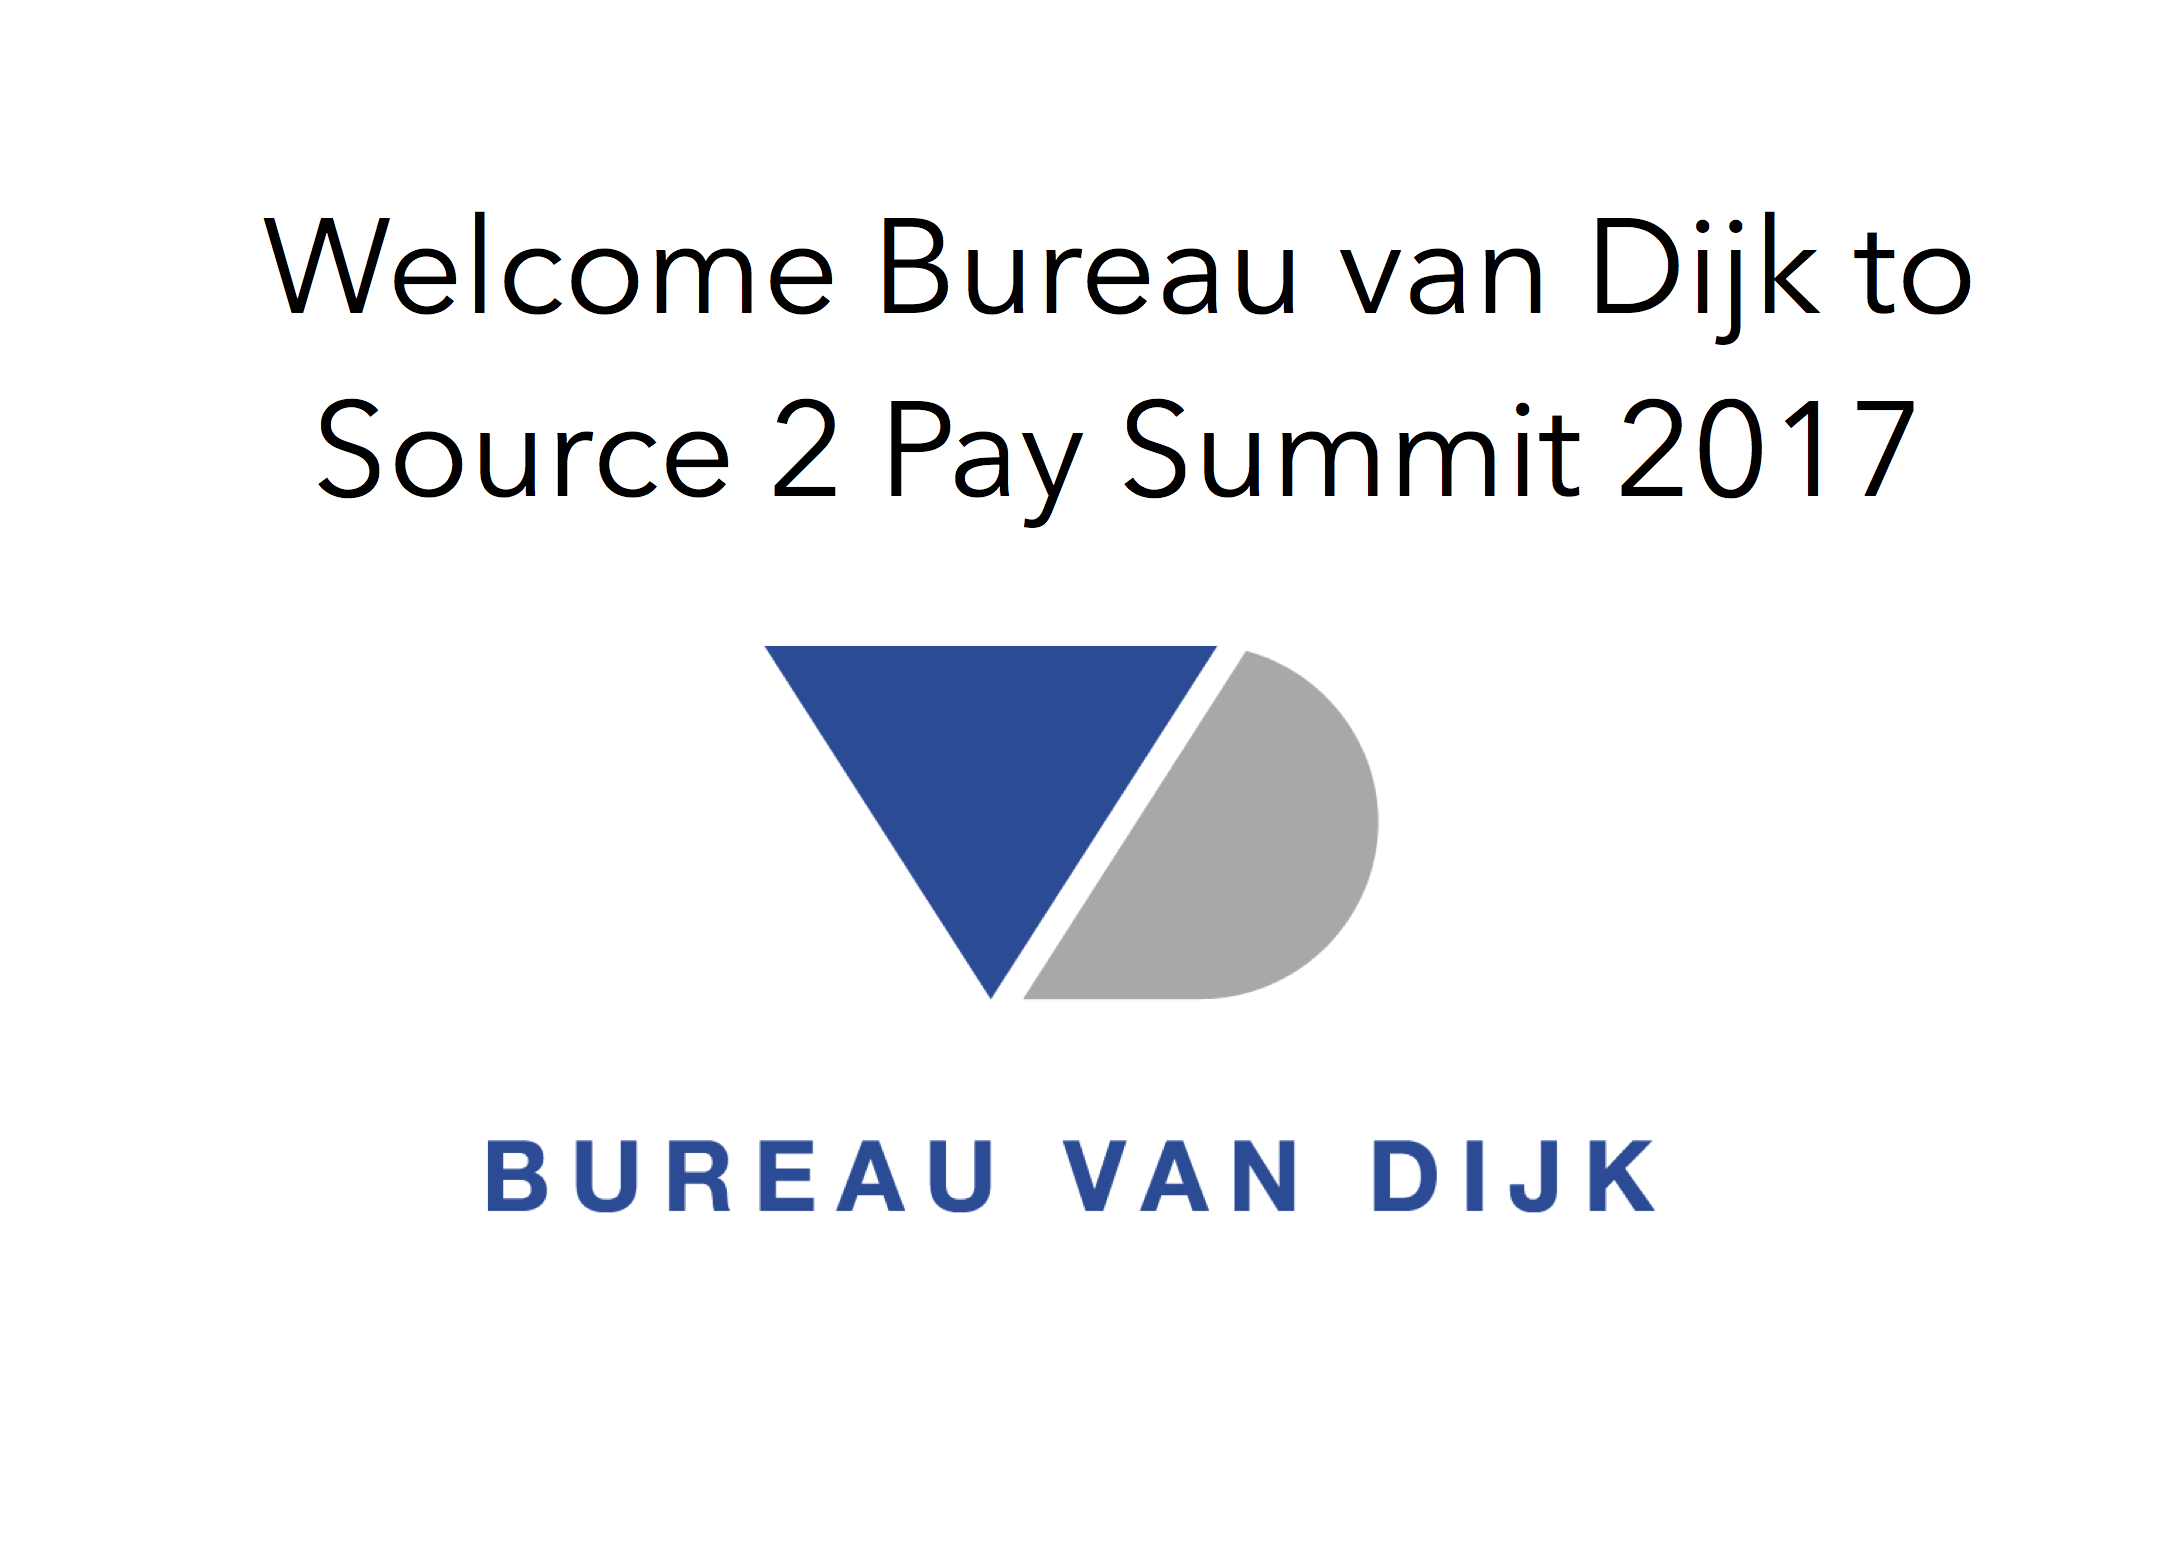 bureau van dijk to source 2 pay summit 2017 ebg network. Black Bedroom Furniture Sets. Home Design Ideas